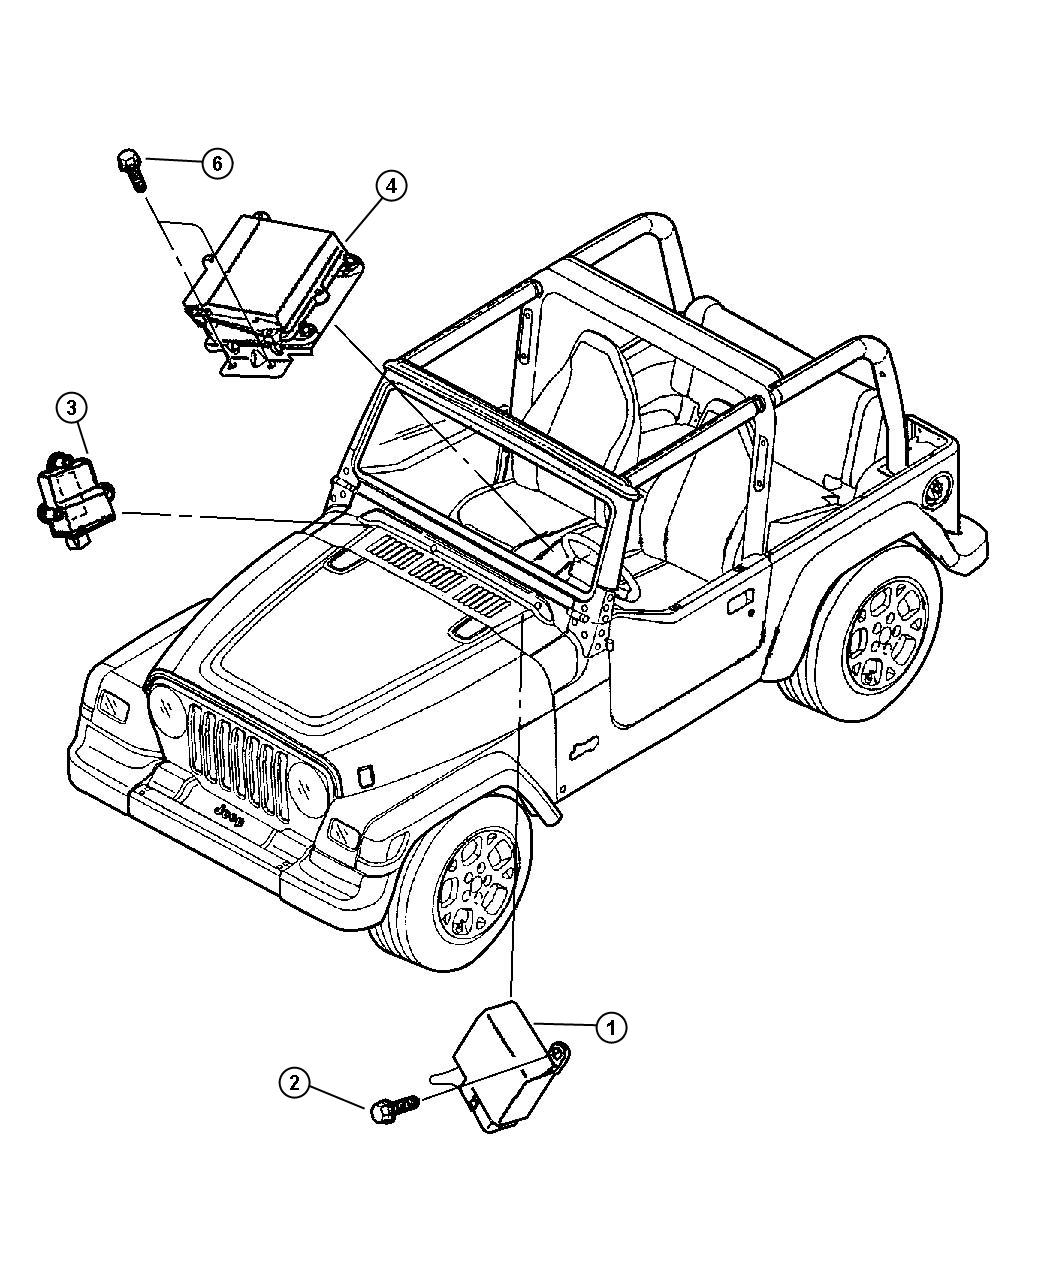 2004 Jeep Wrangler Module. Transmission control. Modules